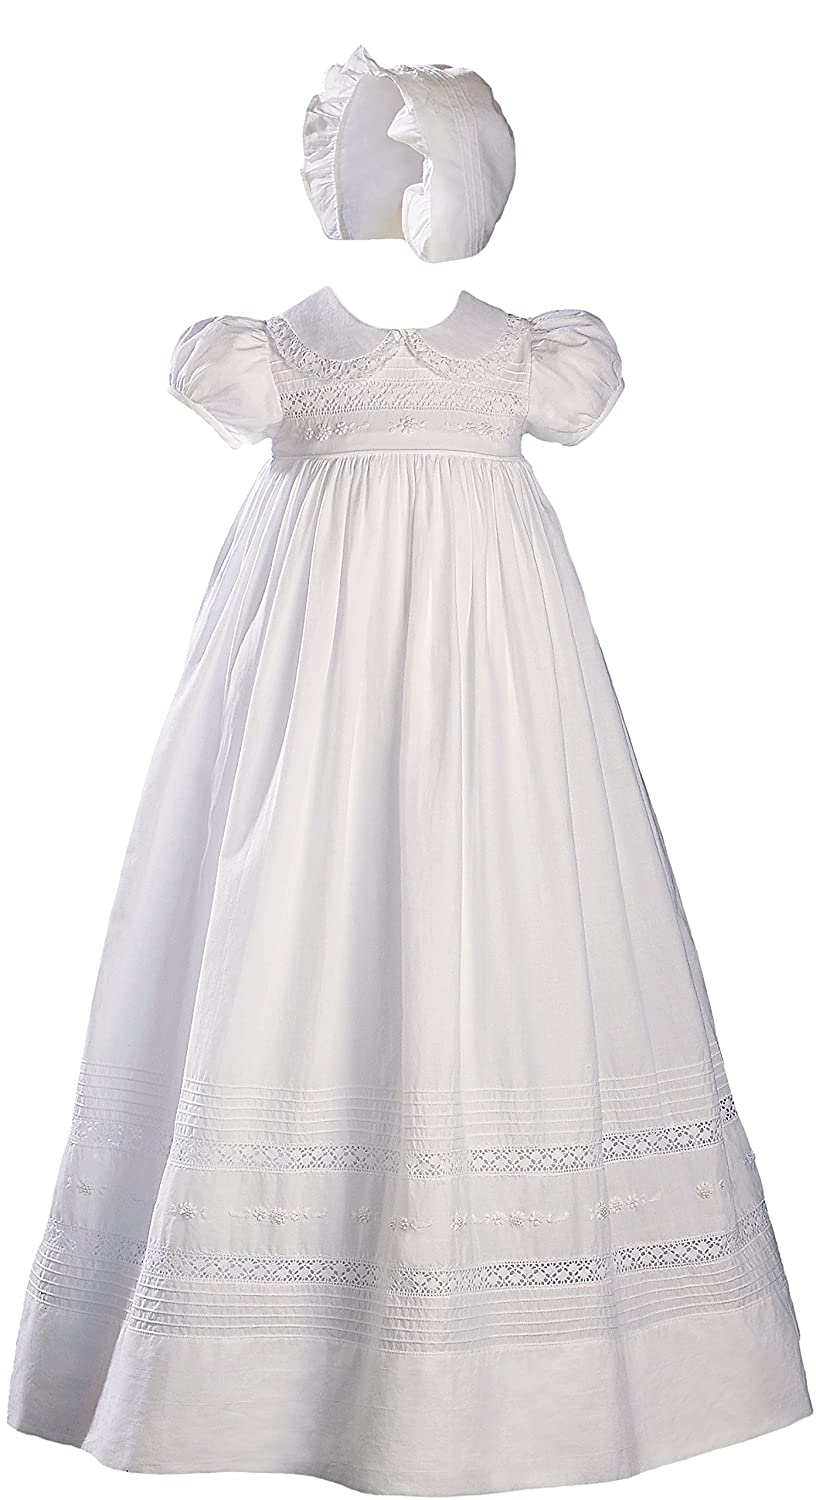 Image of 33' White Cotton Short Sleeve Christening Gown Baptism Gown with Hand Embroidery